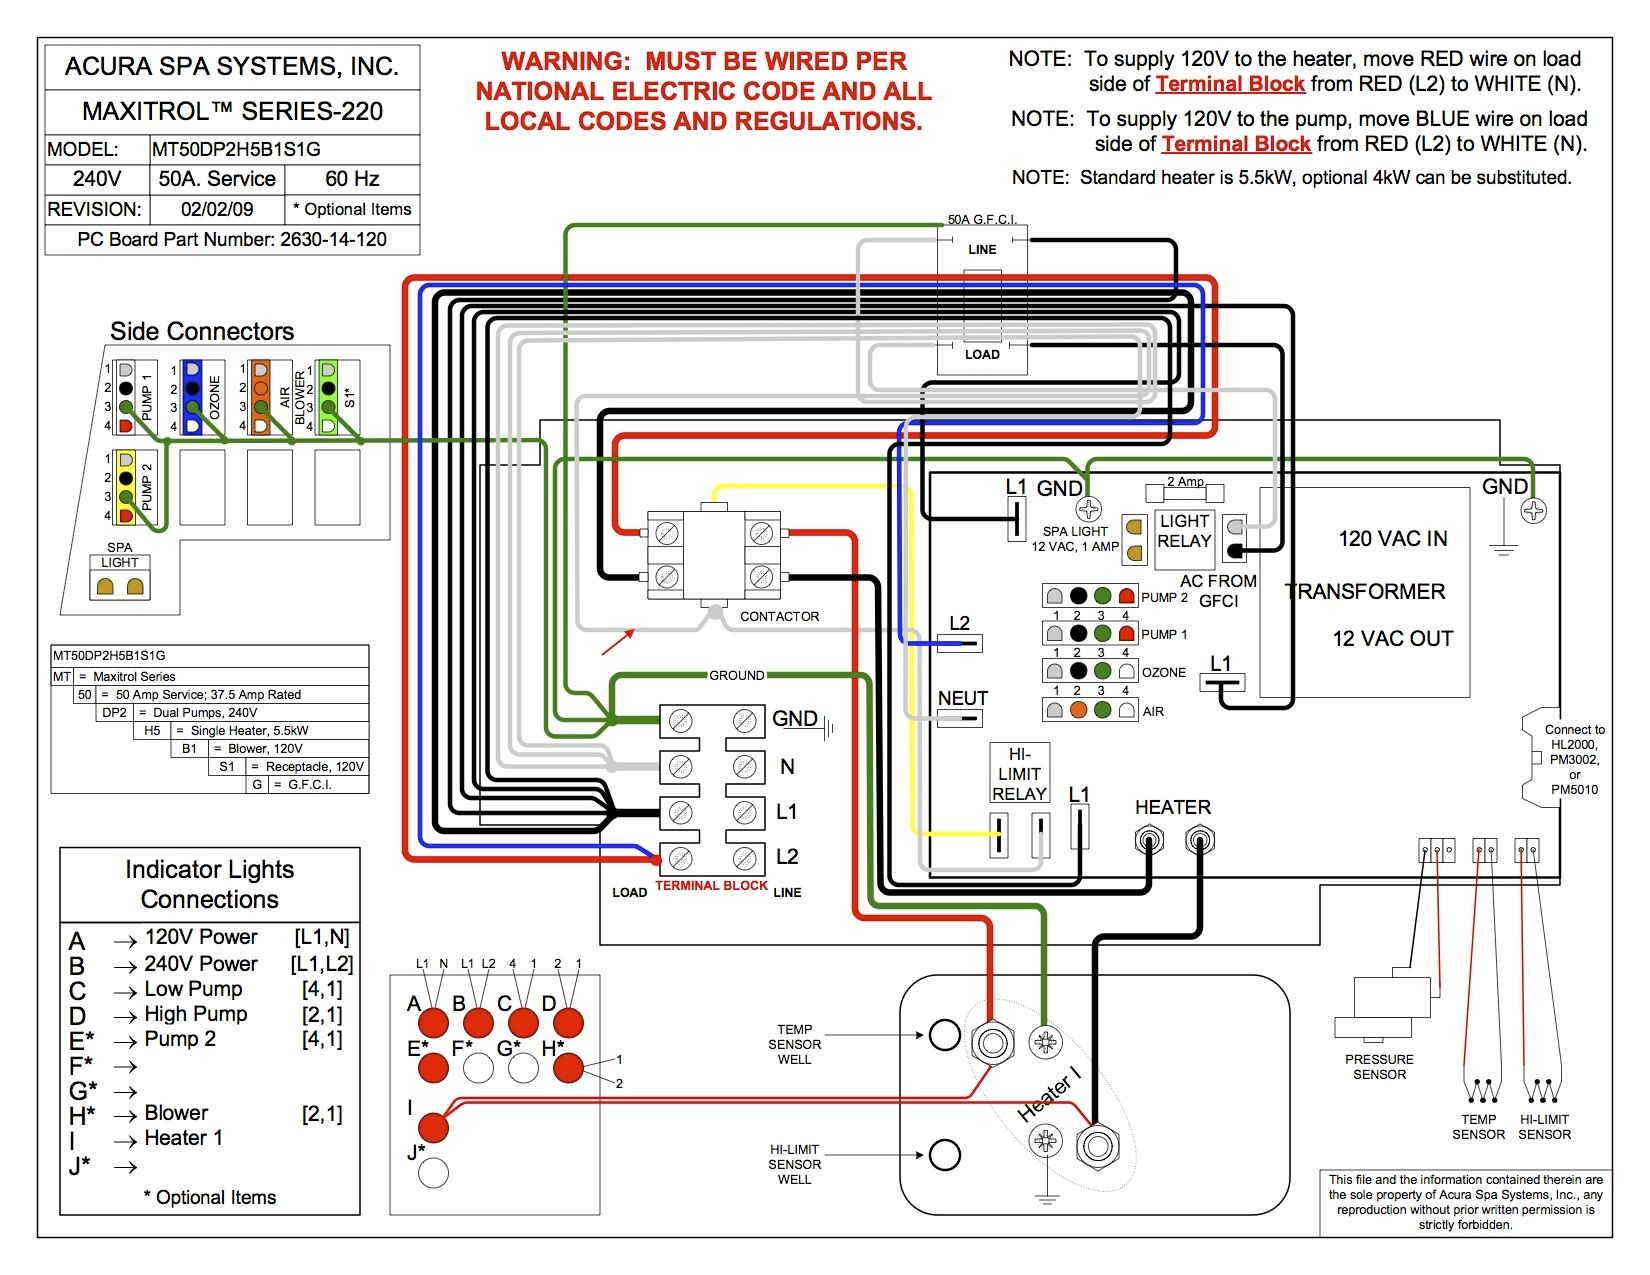 Hot Springs Grandee Wiring Diagram Great Installation Of Yamaha Yl1 Plumbing Third Level Rh 5 2 11 Jacobwinterstein Com